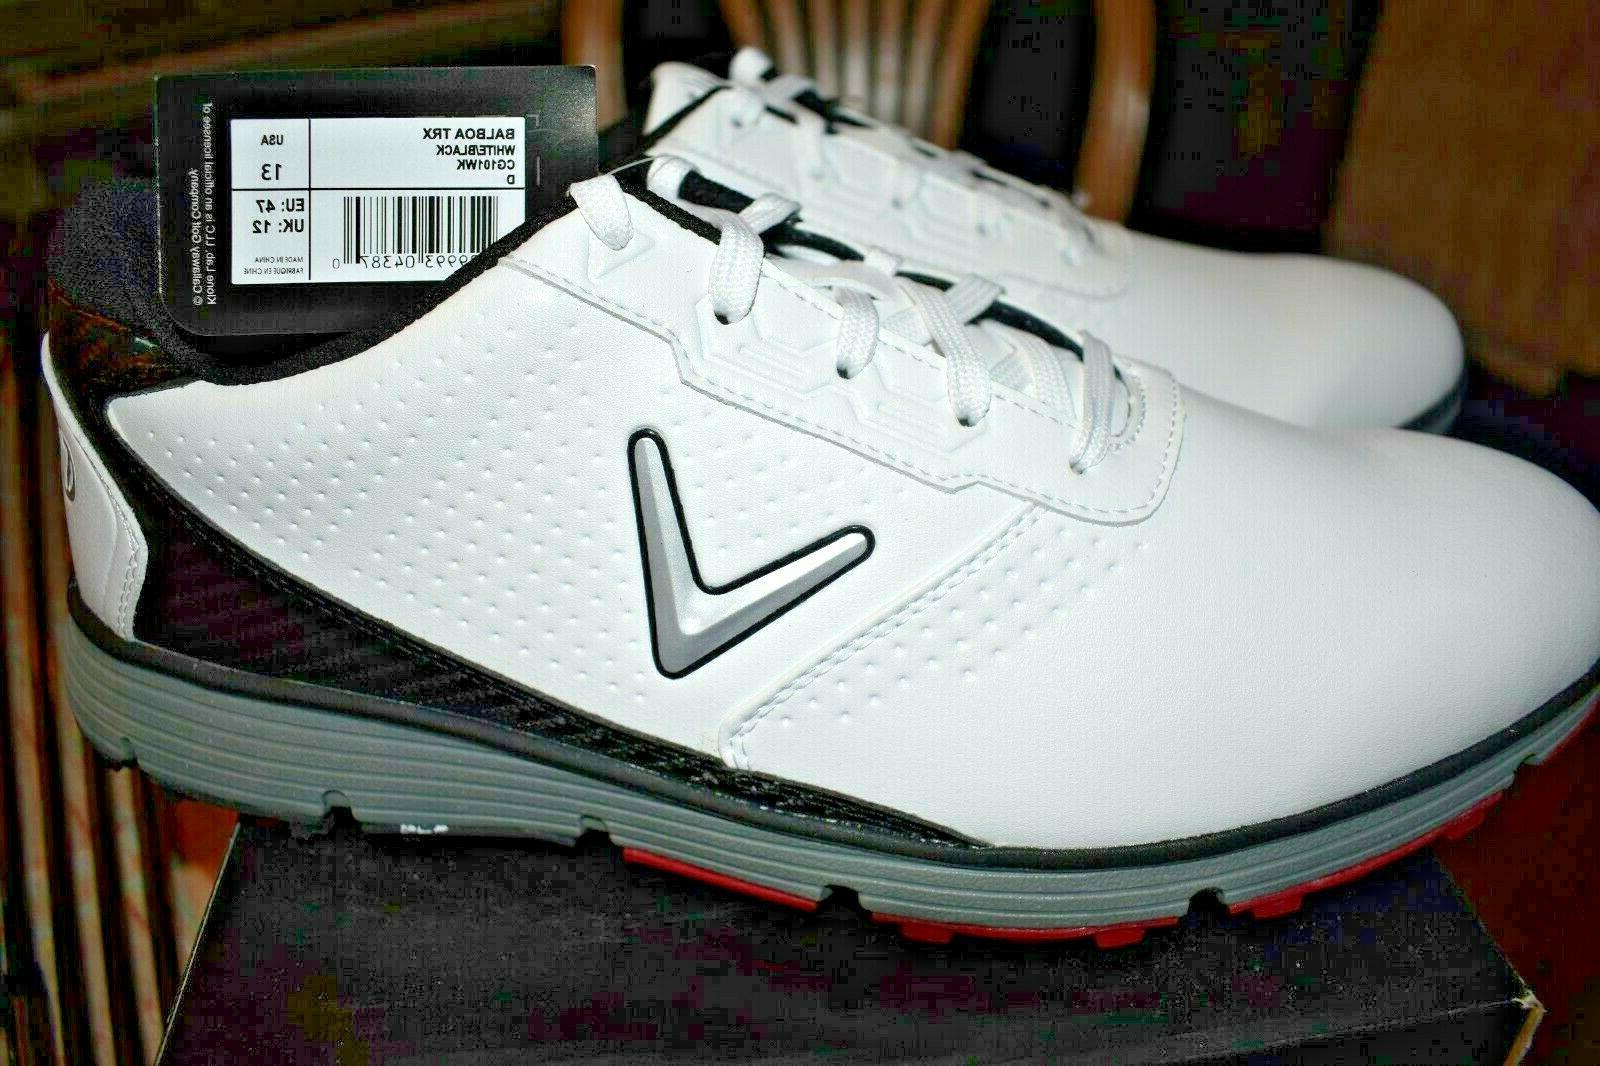 new in box golf balboa trx shoes